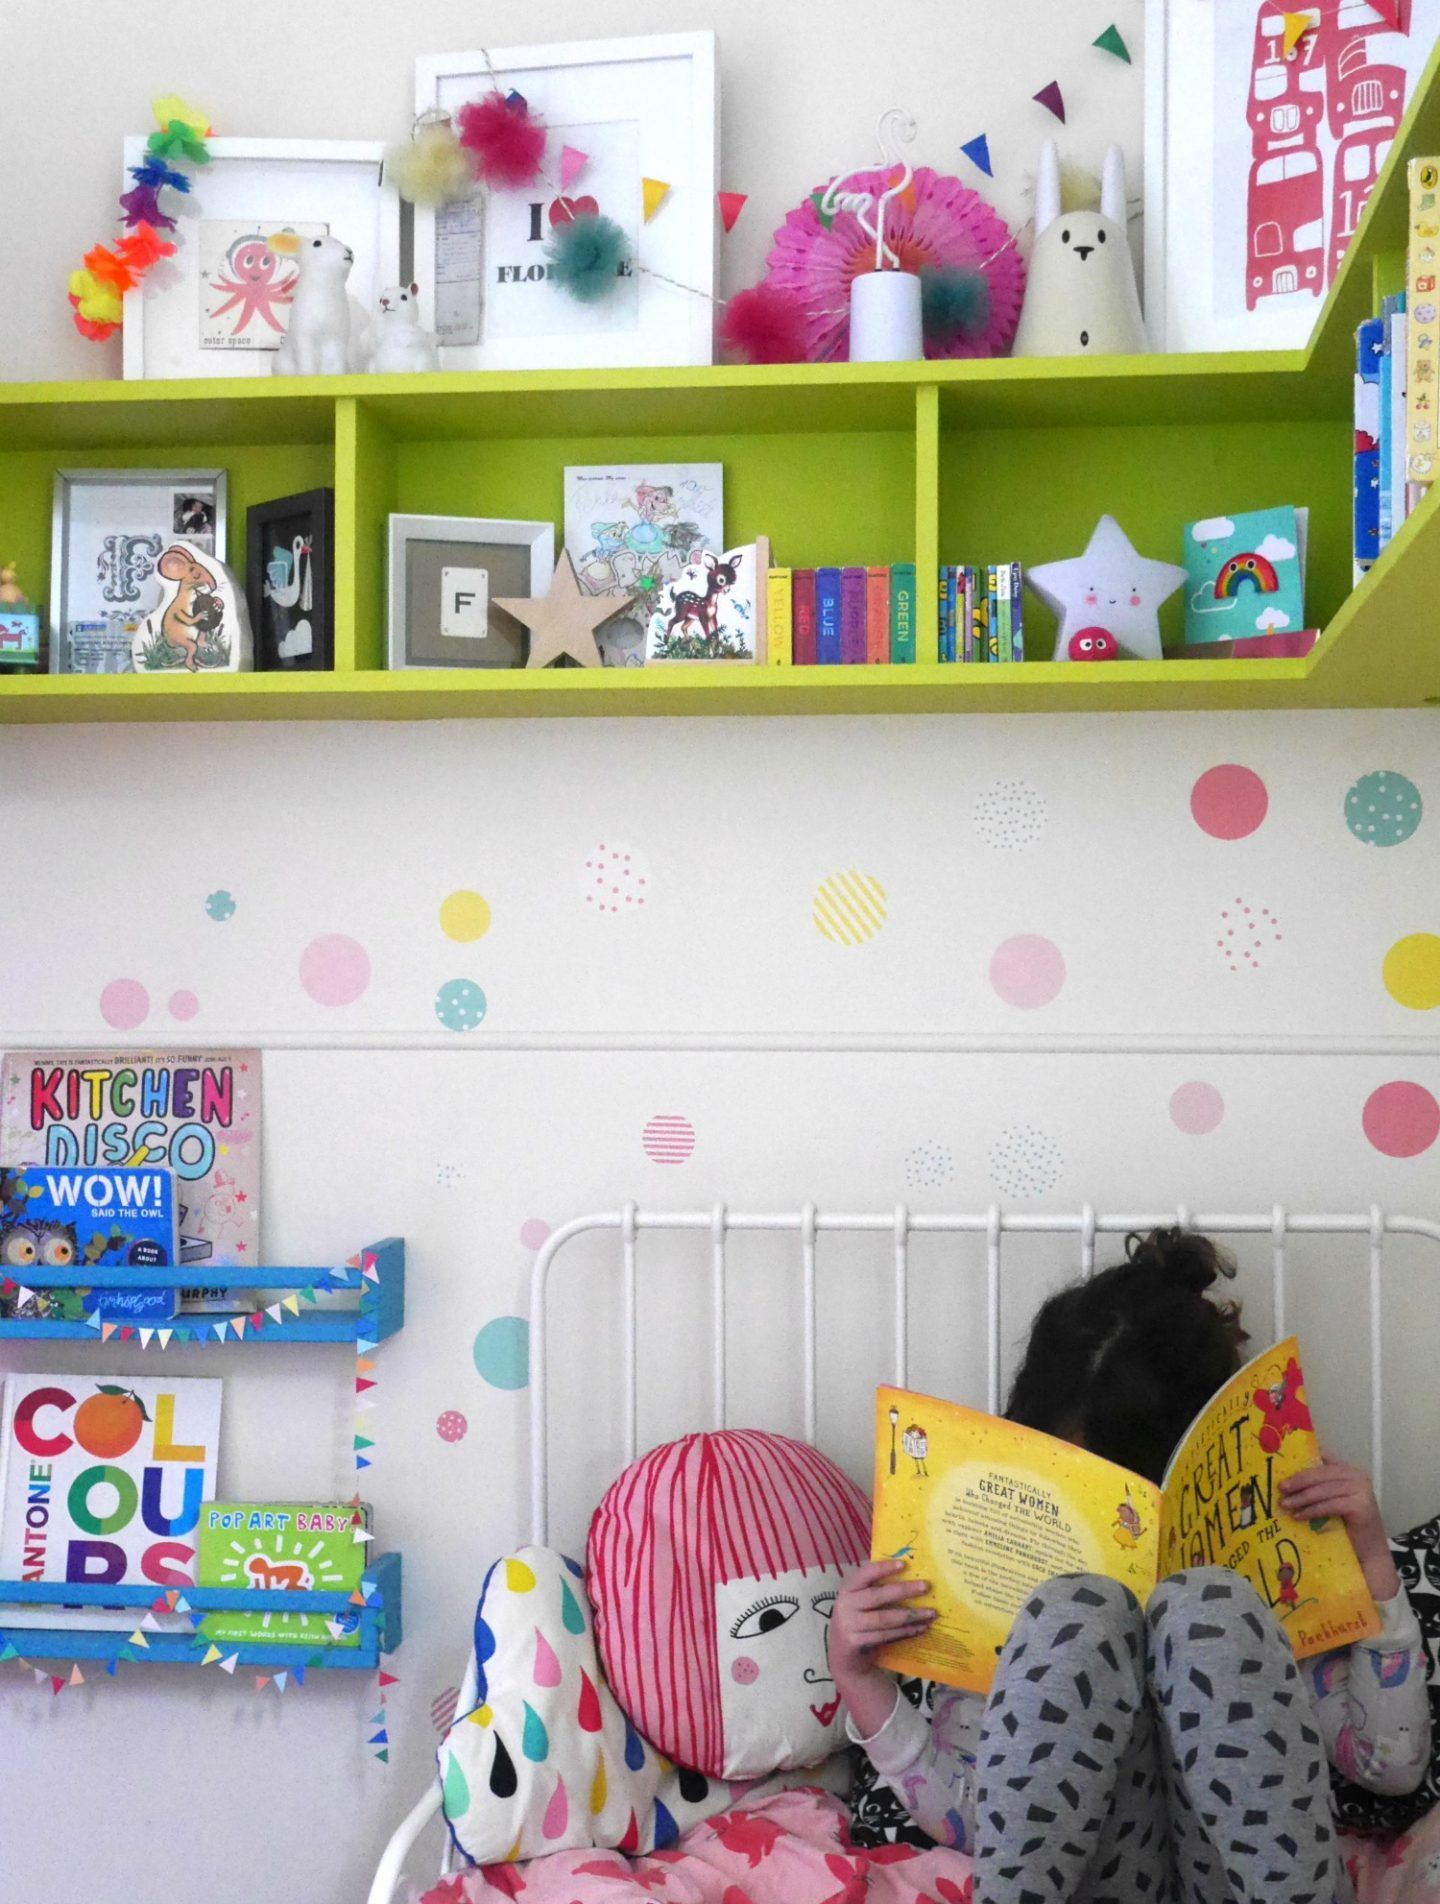 Painted Wall Shelves Stickers And Ikea Hack Bookshelves In A Colourful Children S Bedroom Kidsroom In Colorful Kids Room Kids Rooms Diy Wall Shelves Bedroom